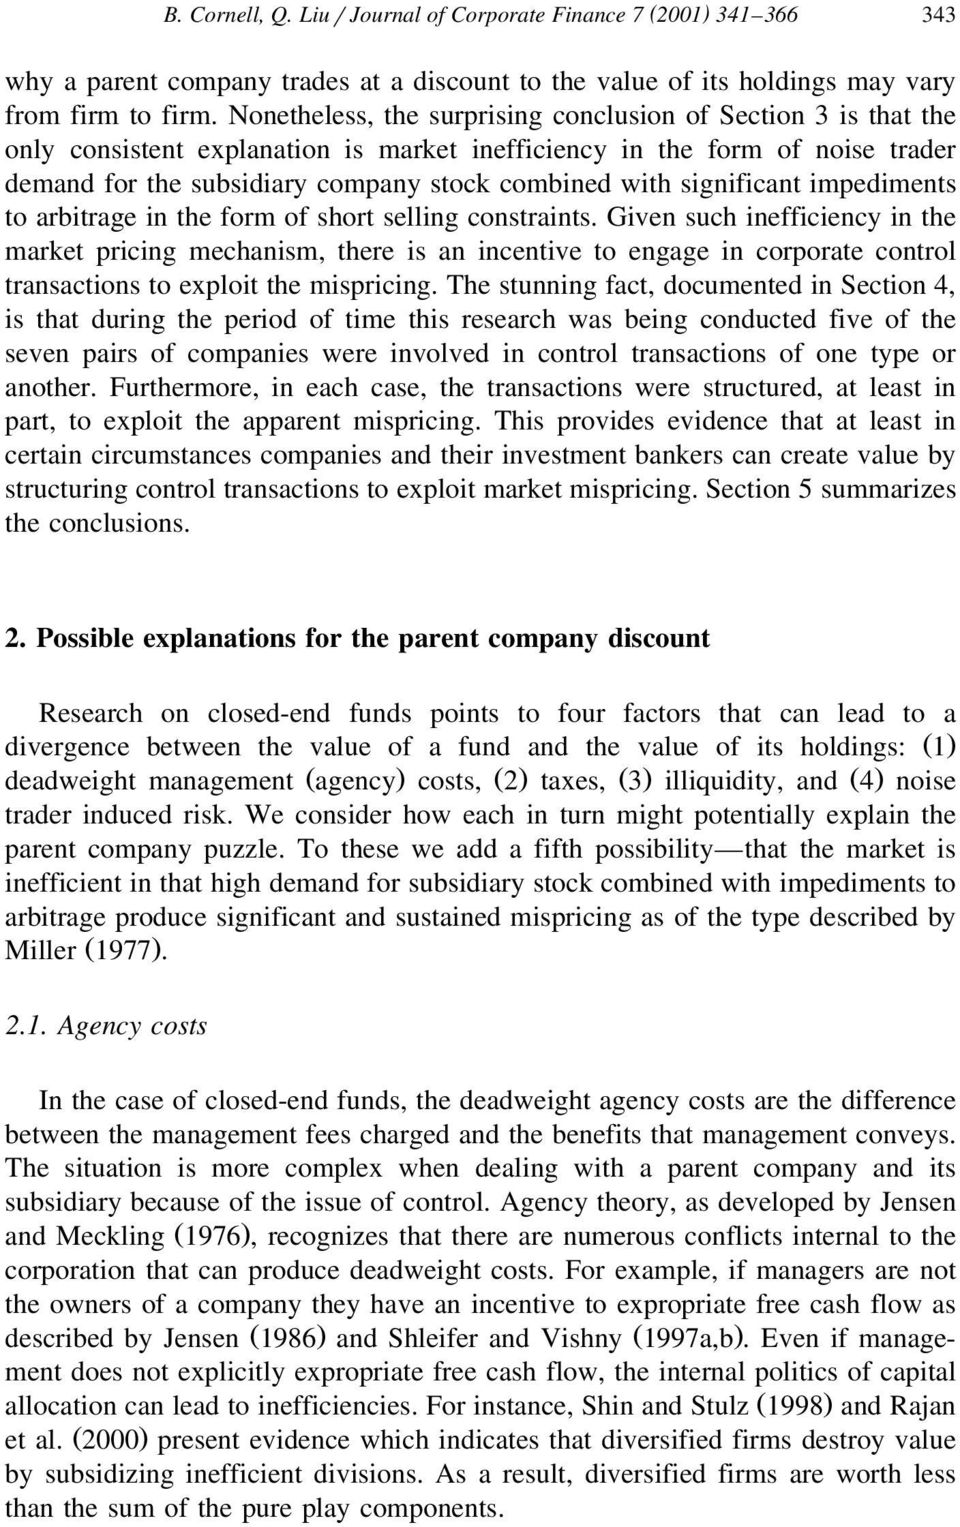 significant impediments to arbitrage in the form of short selling constraints.